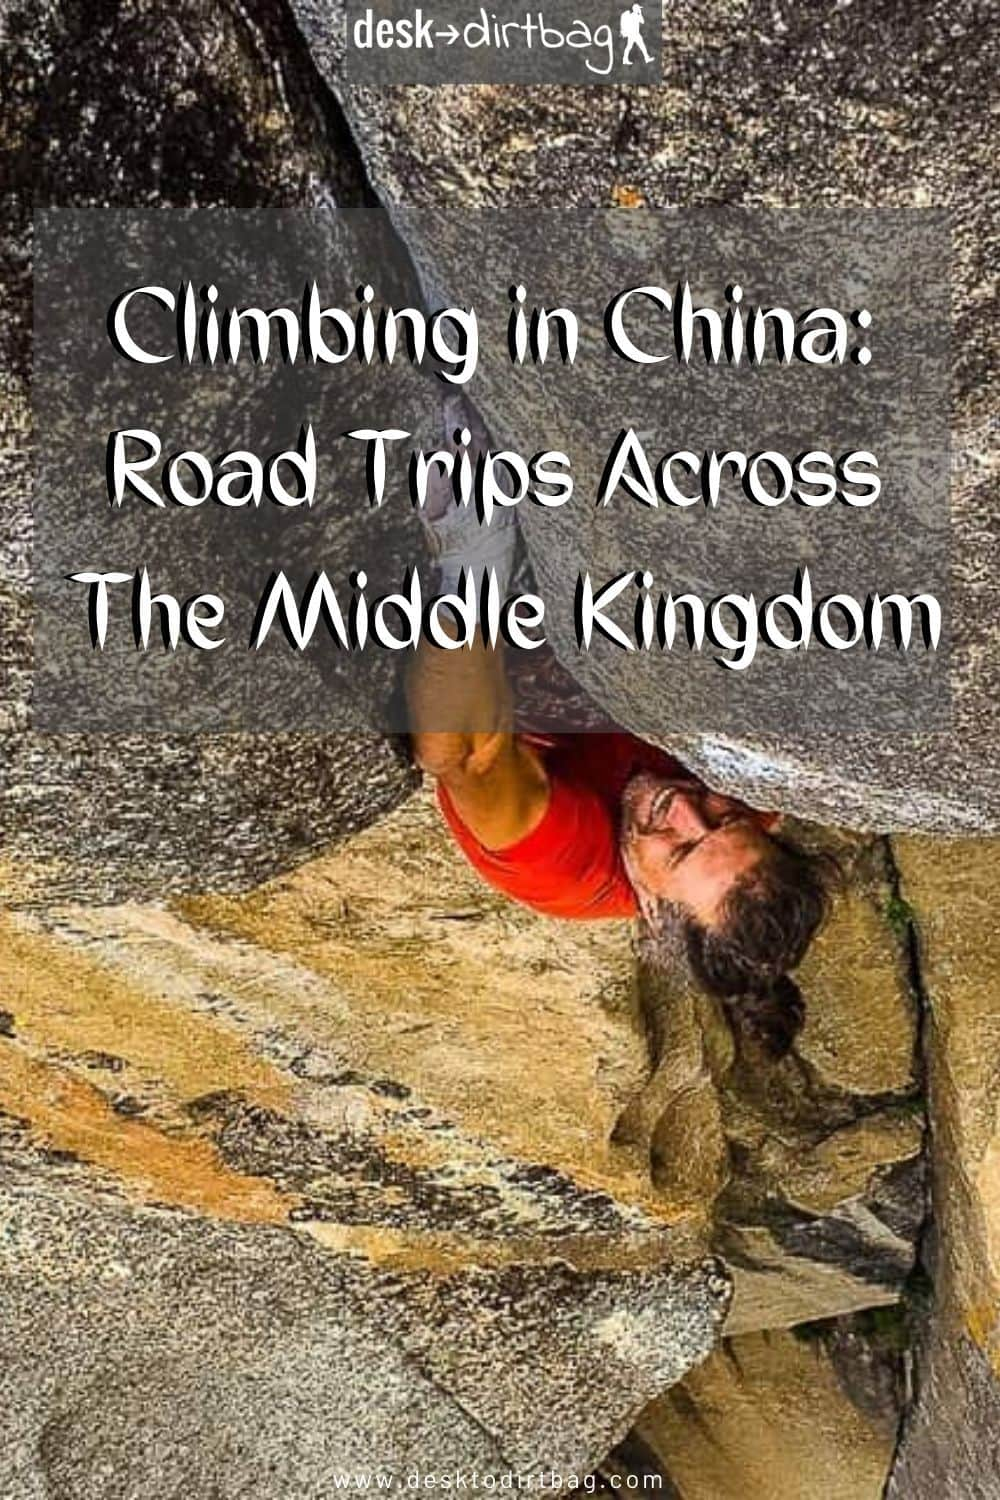 Climbing in China: Road Trips and Vanlife Across The Middle Kingdom